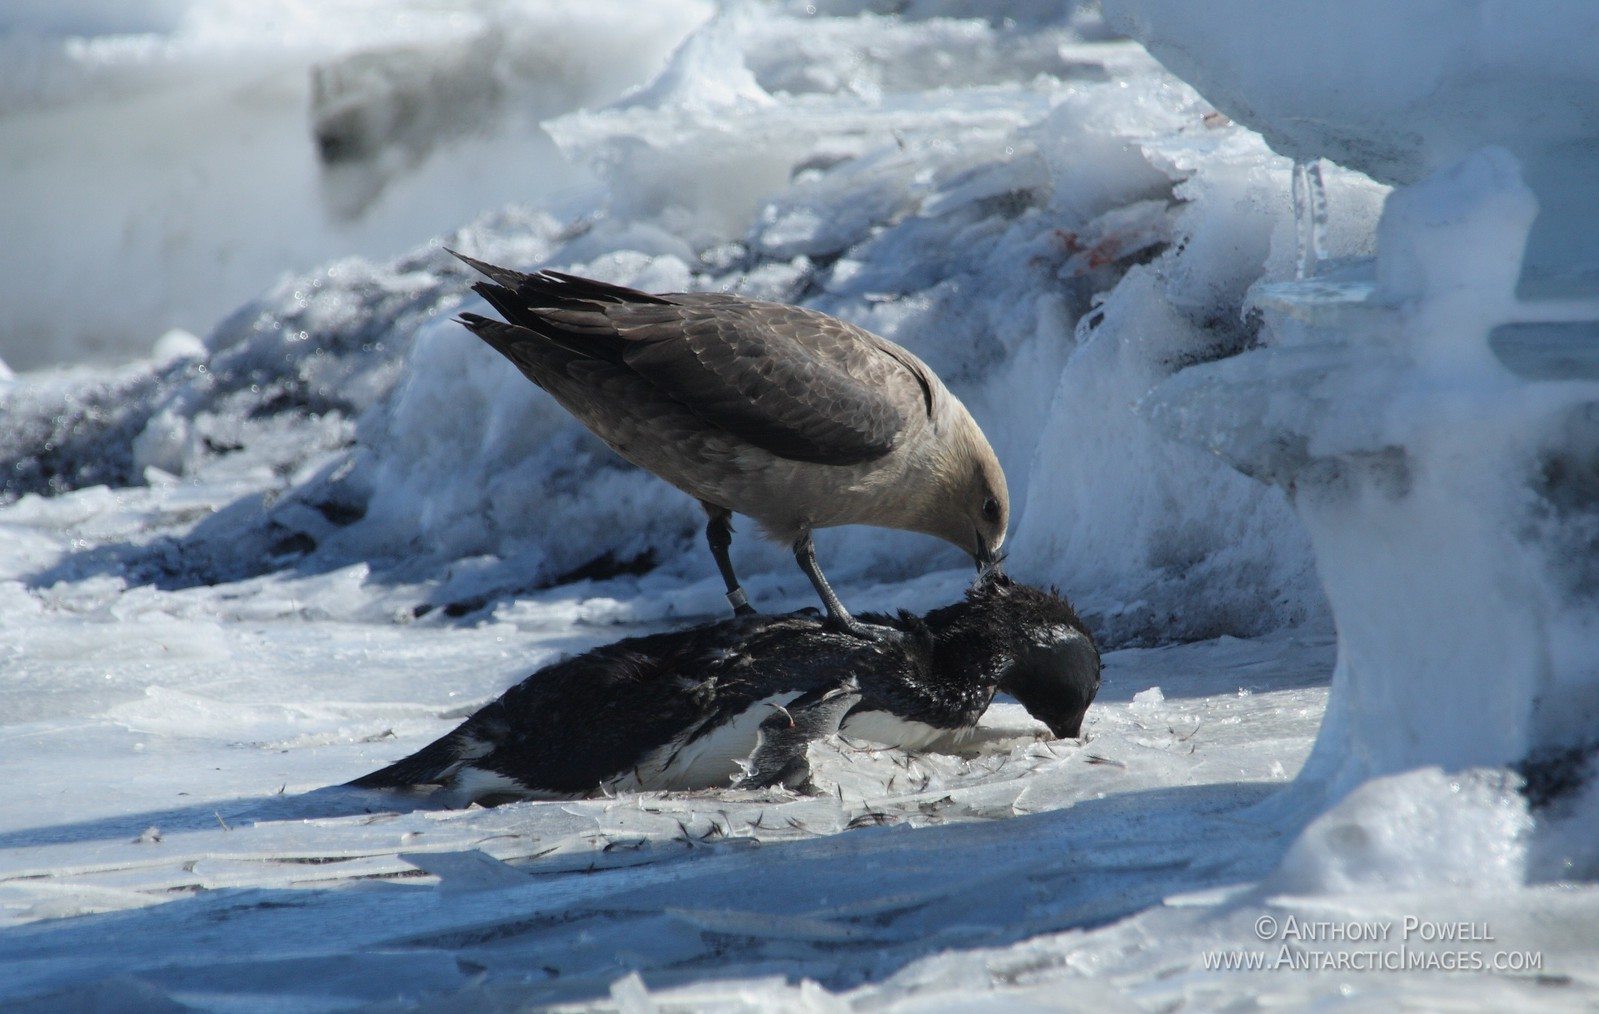 Skua eating a dead penguin.